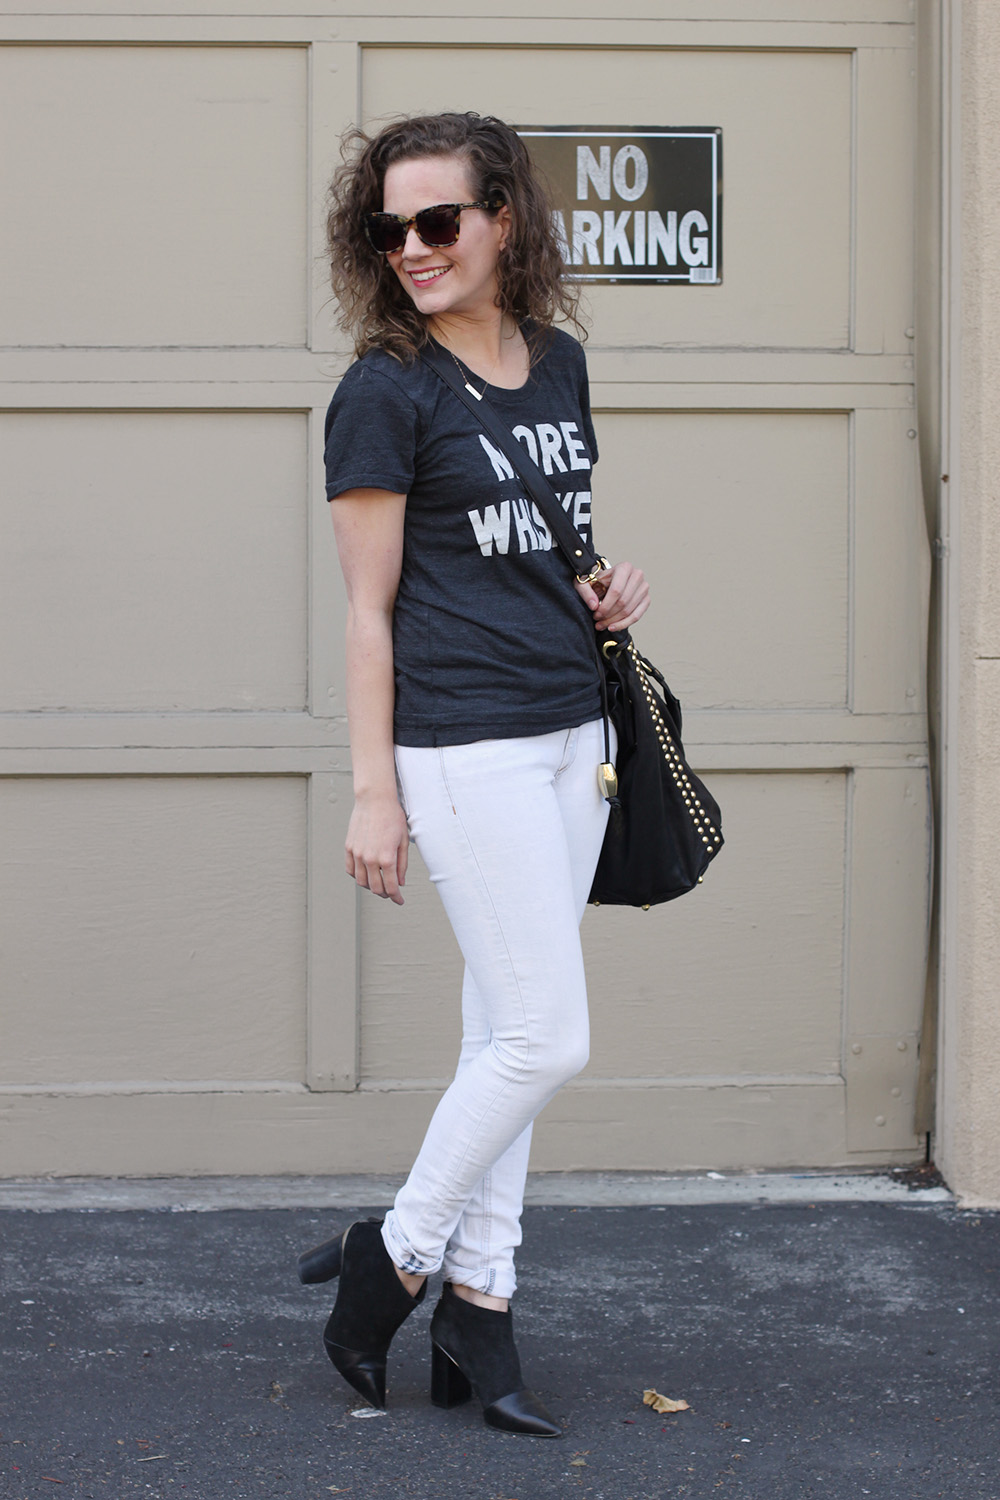 back to basics with print liberation's more whiskey tee! undeniablestyle.com